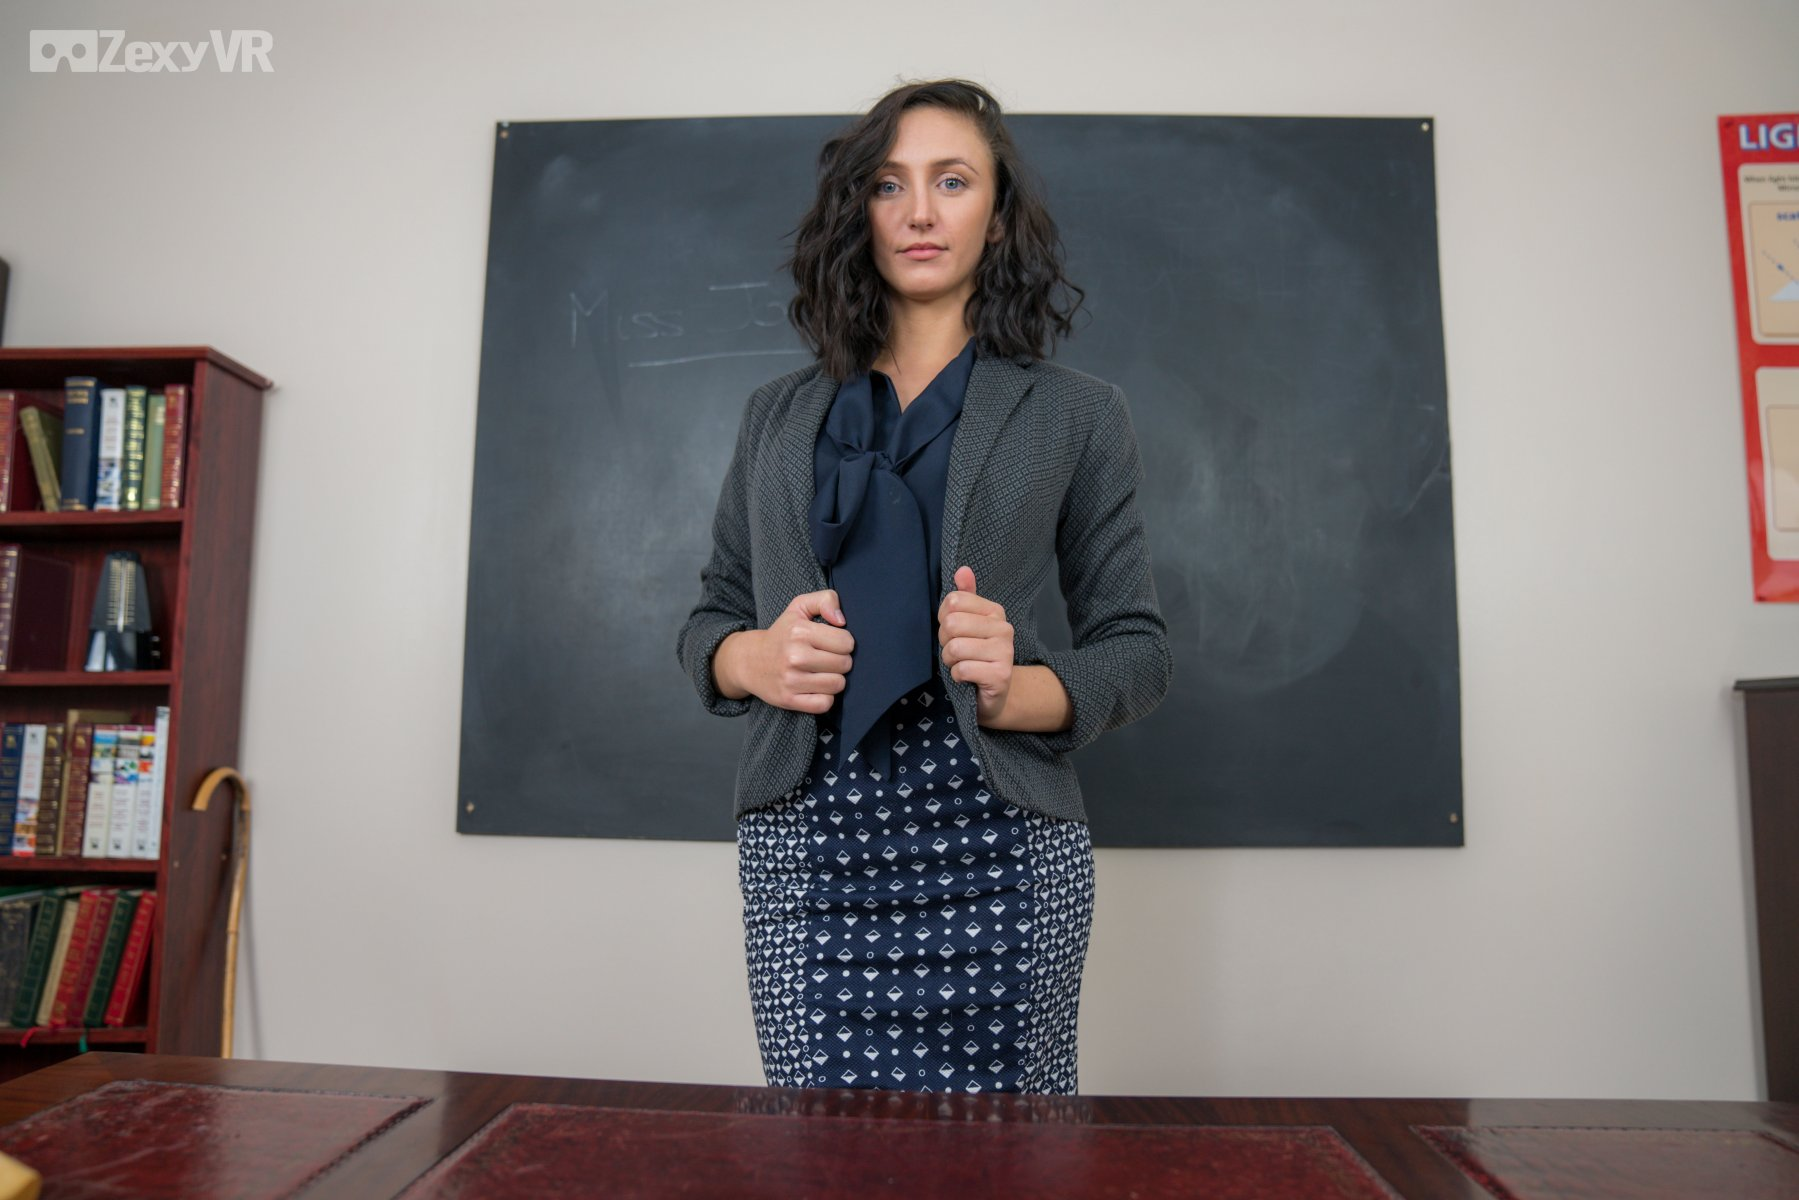 Miss Jones - MILF Teacher Solo Mia J